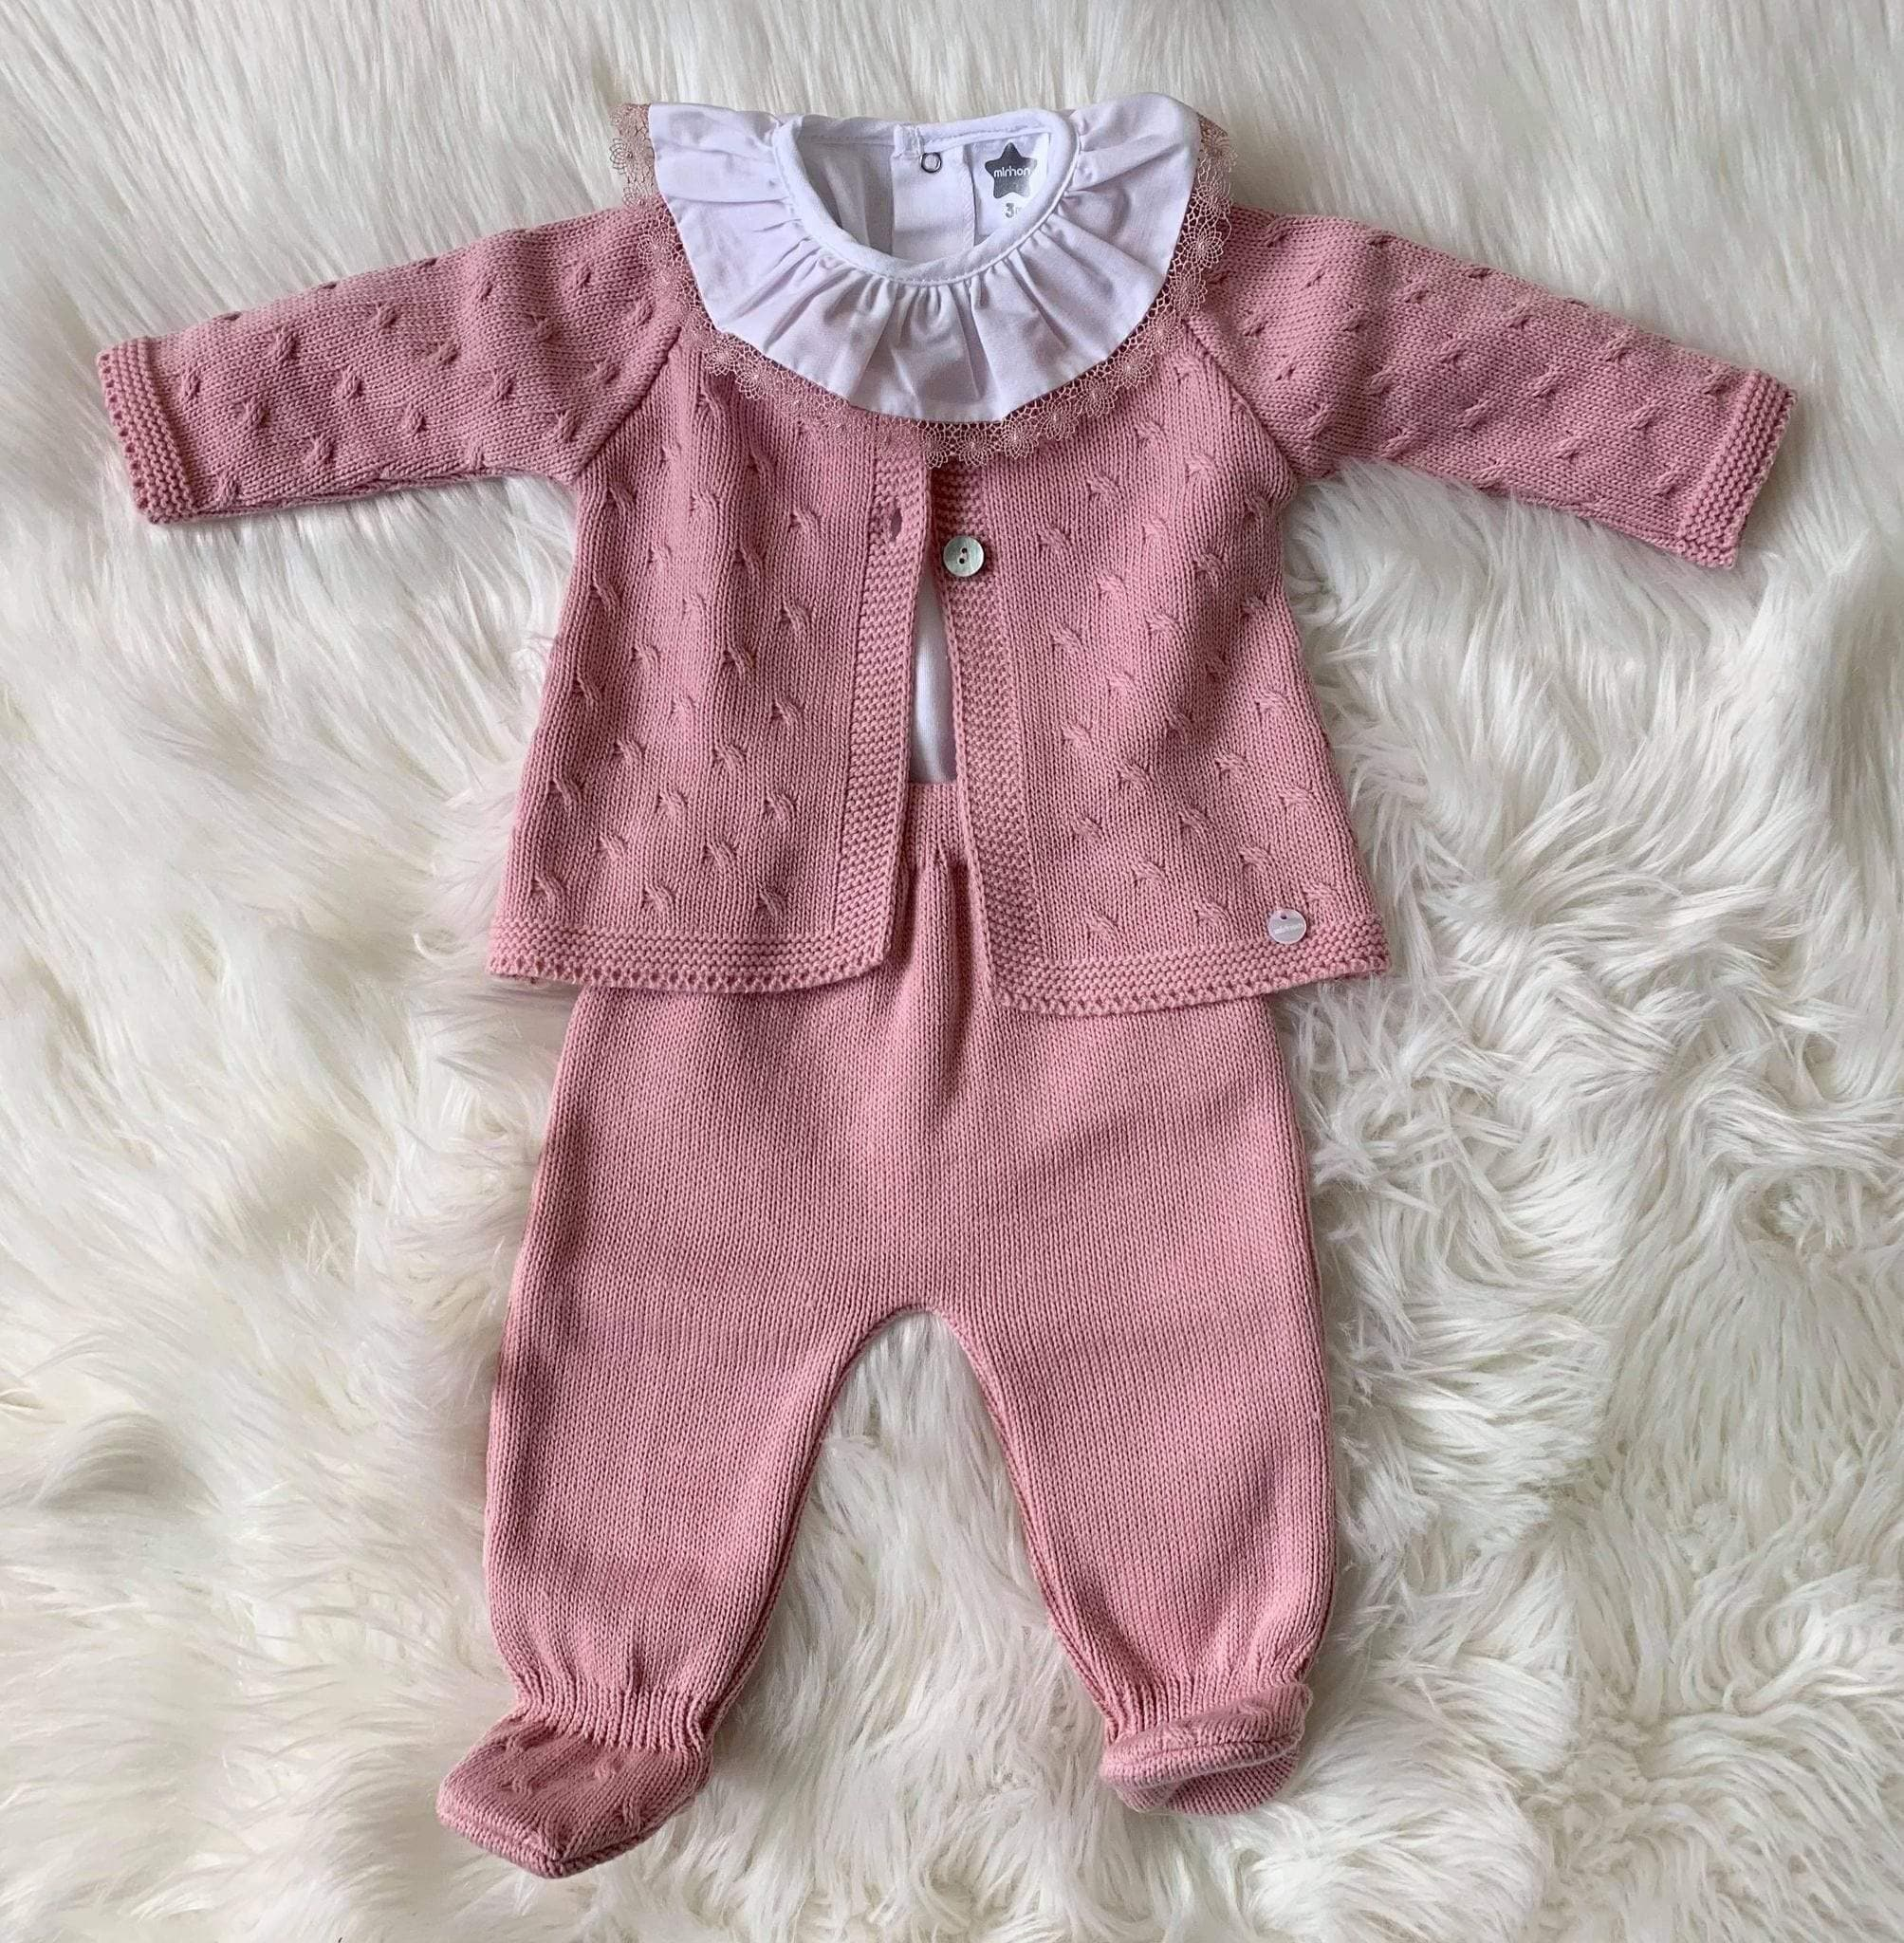 Minhon Baby Knitwear Minhon AW20 - Dusky Pink Knitted 3pc Set with Frill Collar Bodysuit